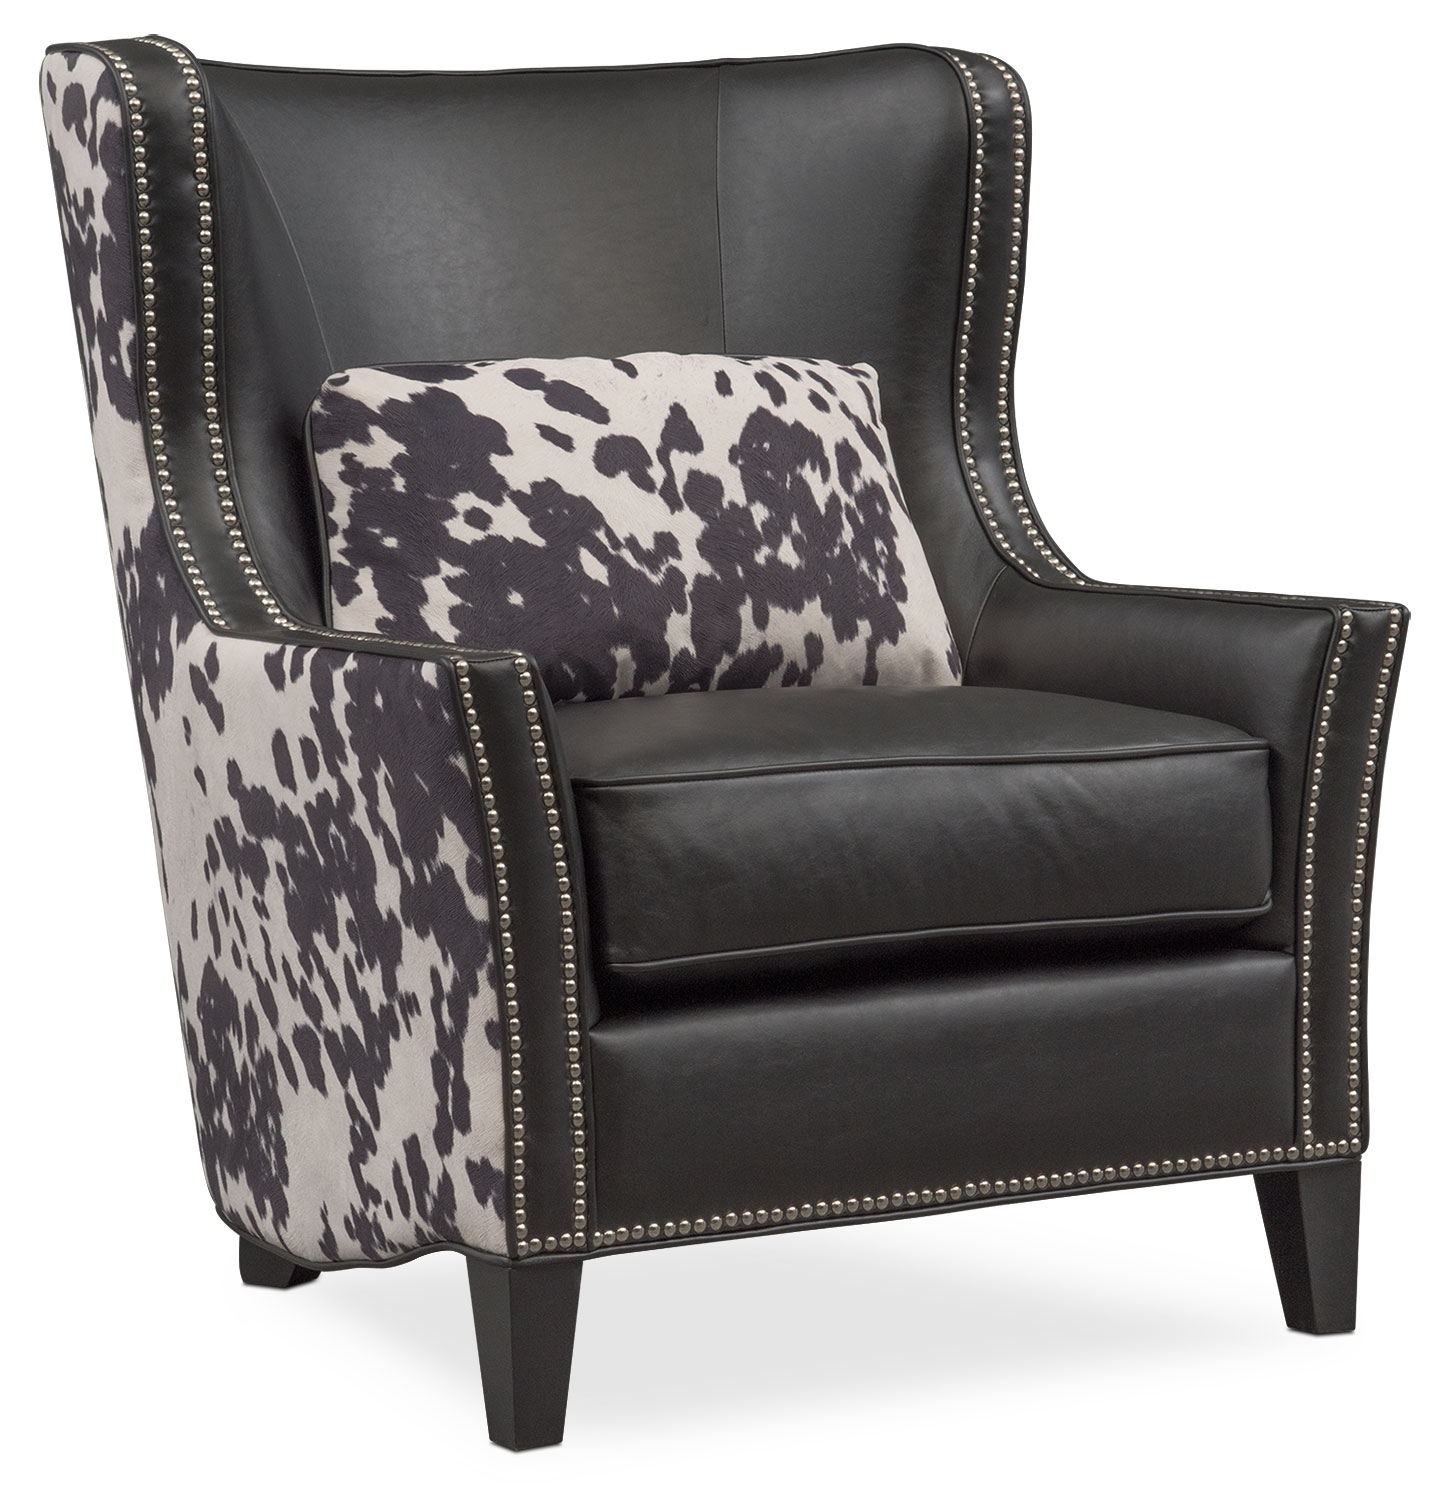 Exceptionnel Living Room Furniture   Santa Fe Accent Chair   Cowhide